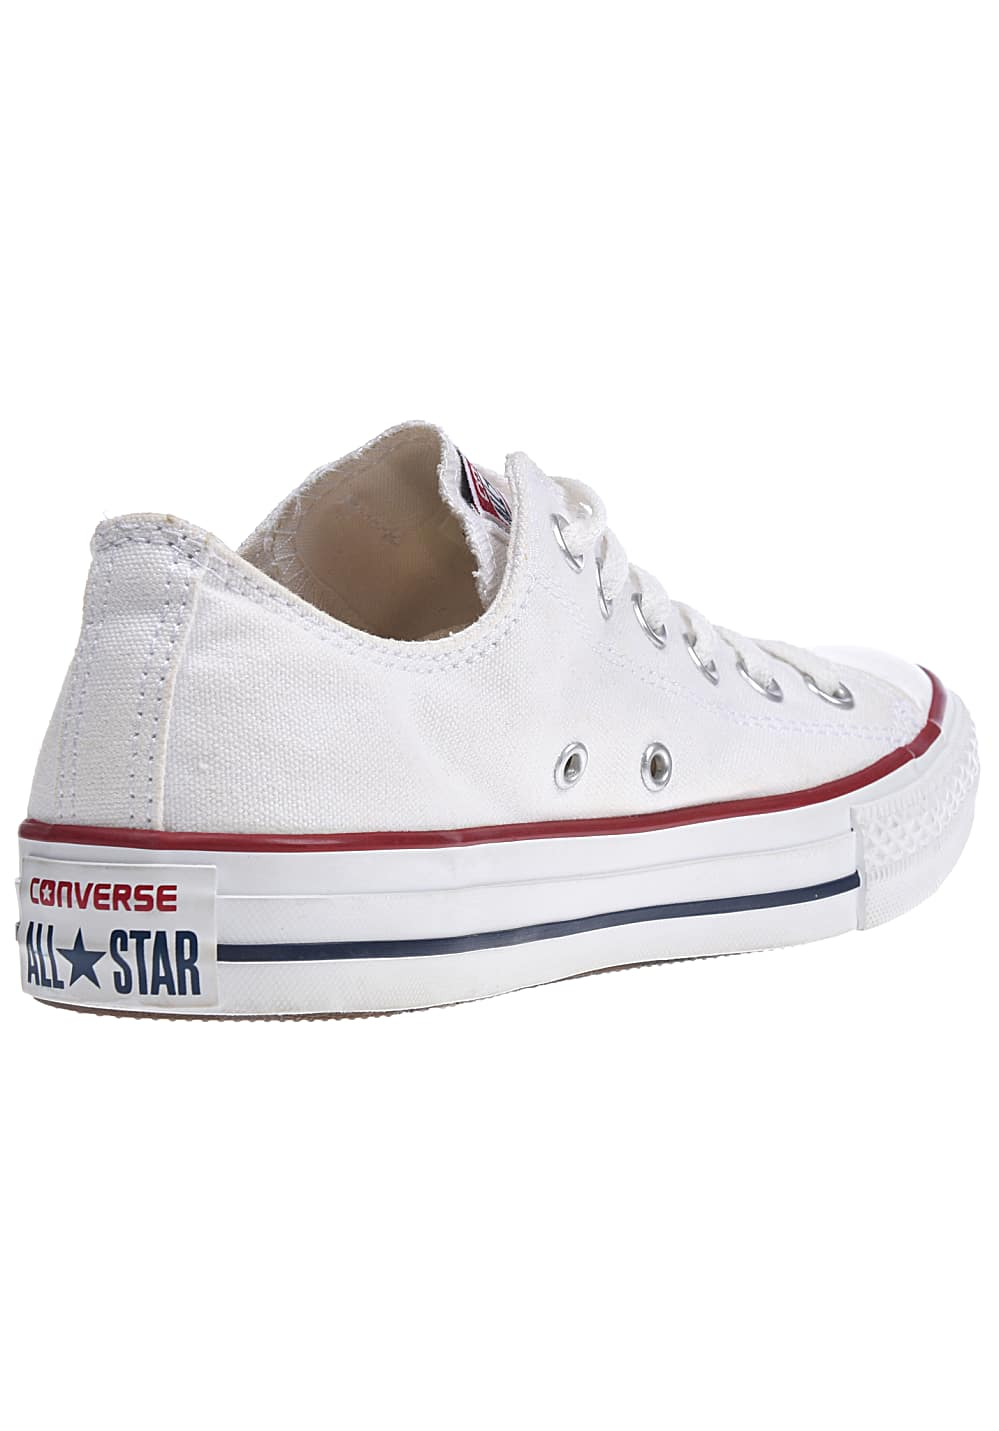 Converse All Star Ox - Sneaker - Weiß